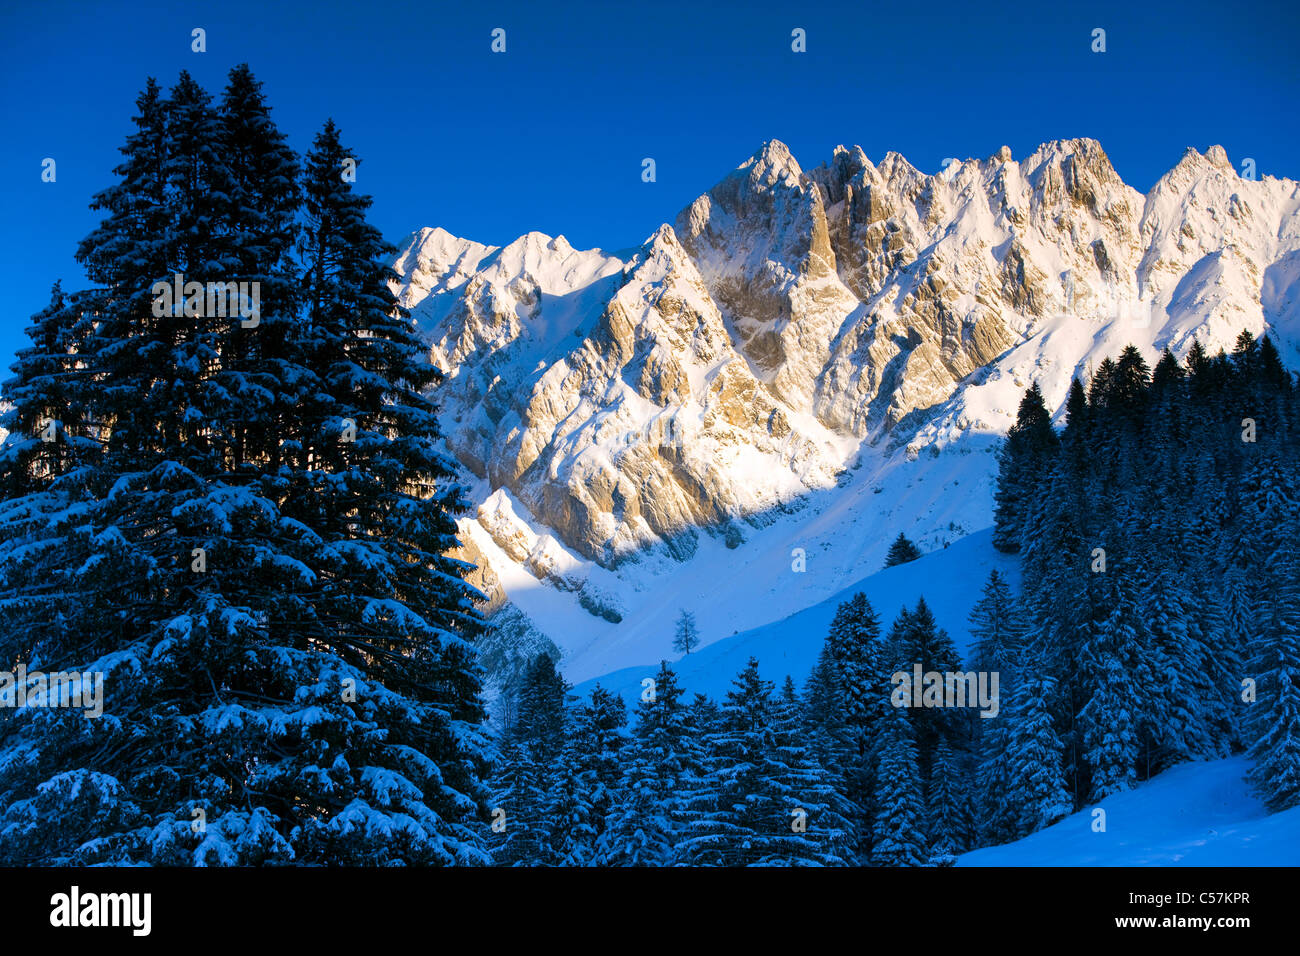 Silver records, Switzerland, Europe, canton St. Gallen, Toggenburg, mountains, alp stone, snow, winter, firs - Stock Image